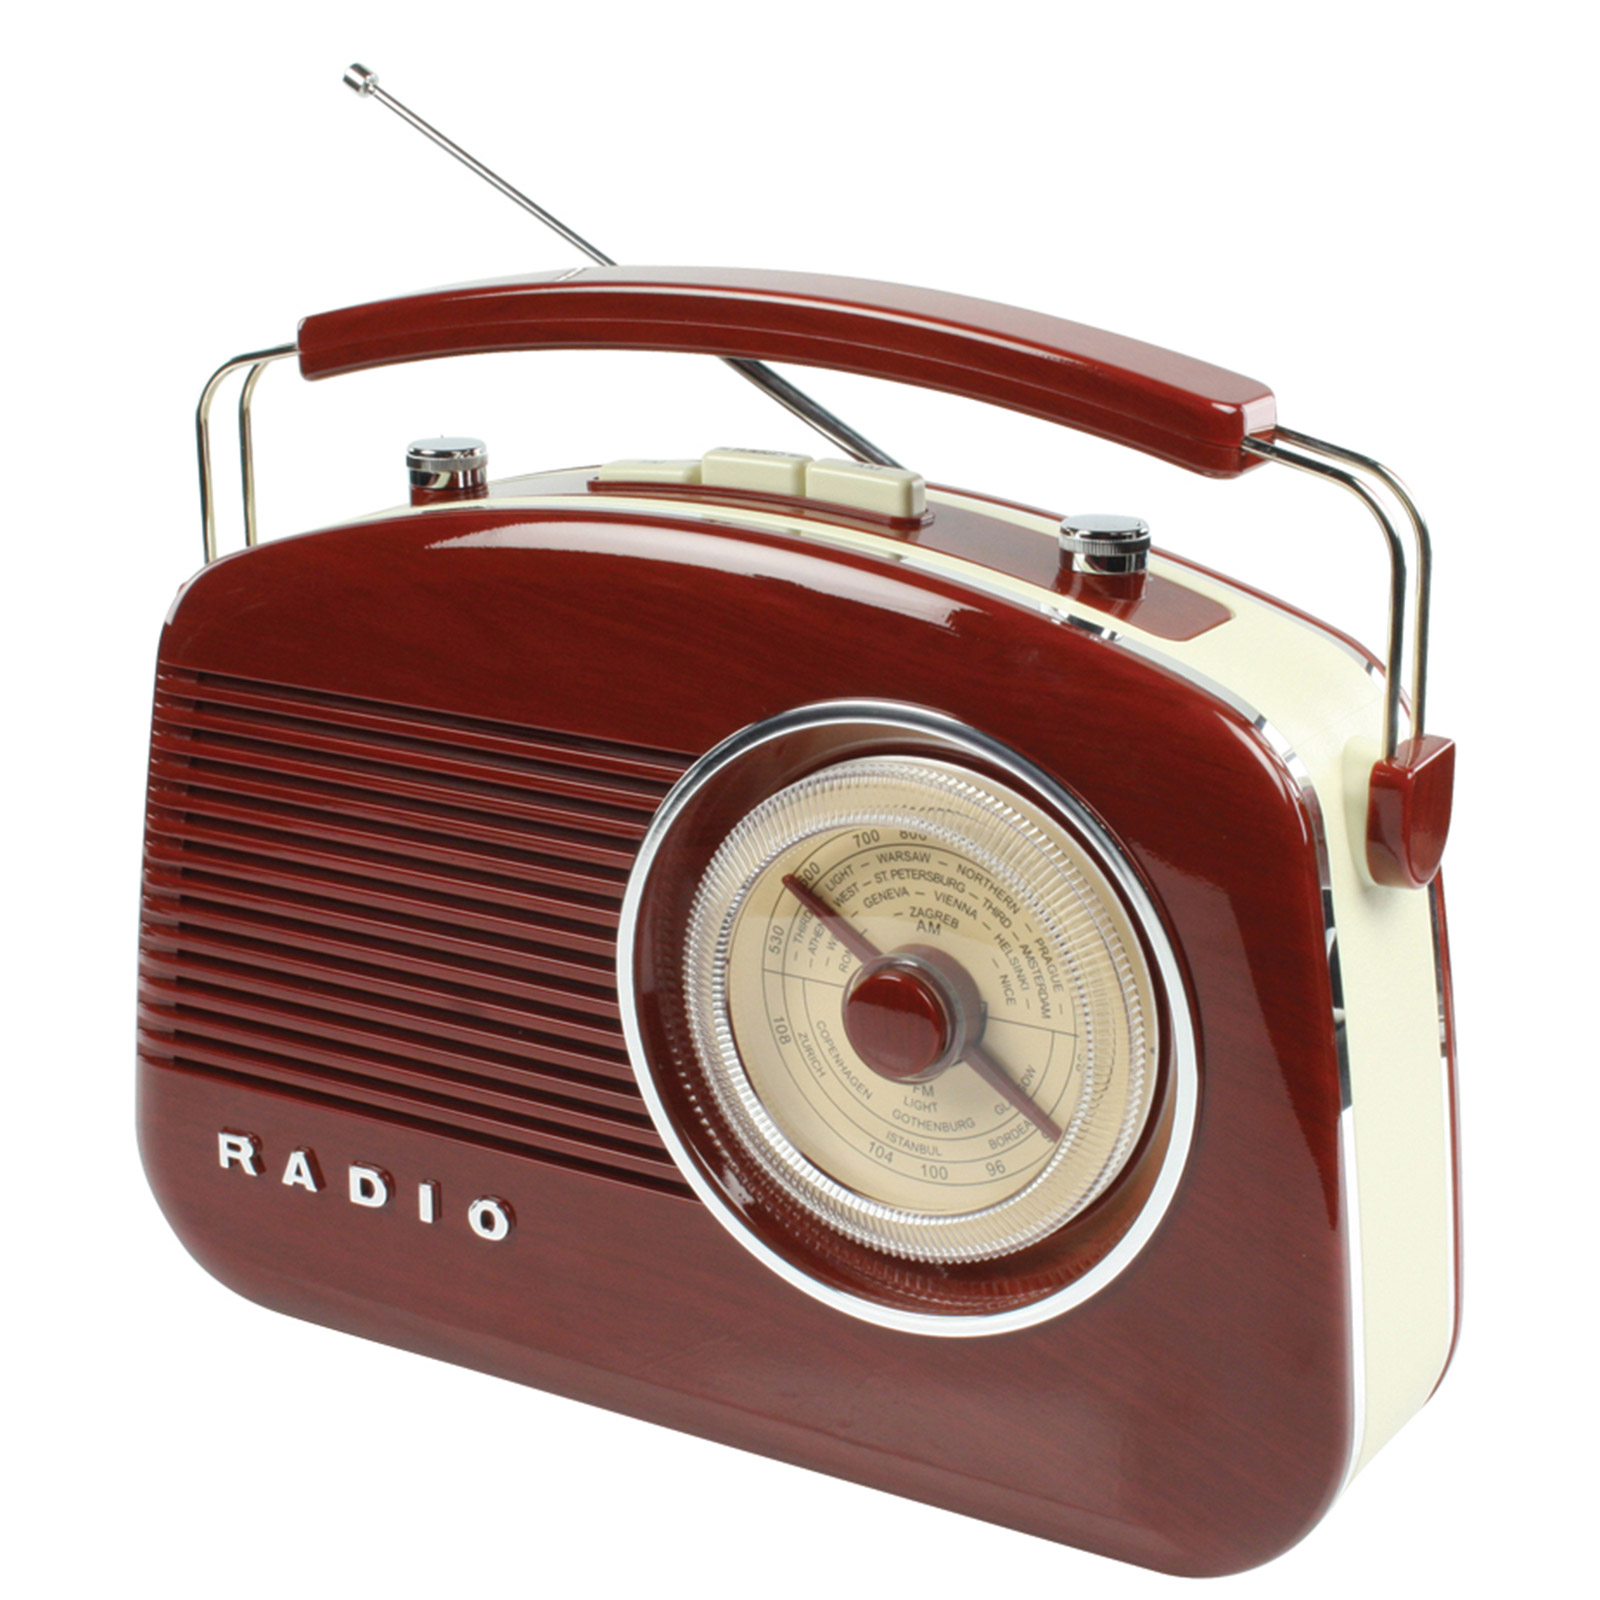 konig new retro vintage am fm portable big dial radio brown hav tr710br radios. Black Bedroom Furniture Sets. Home Design Ideas